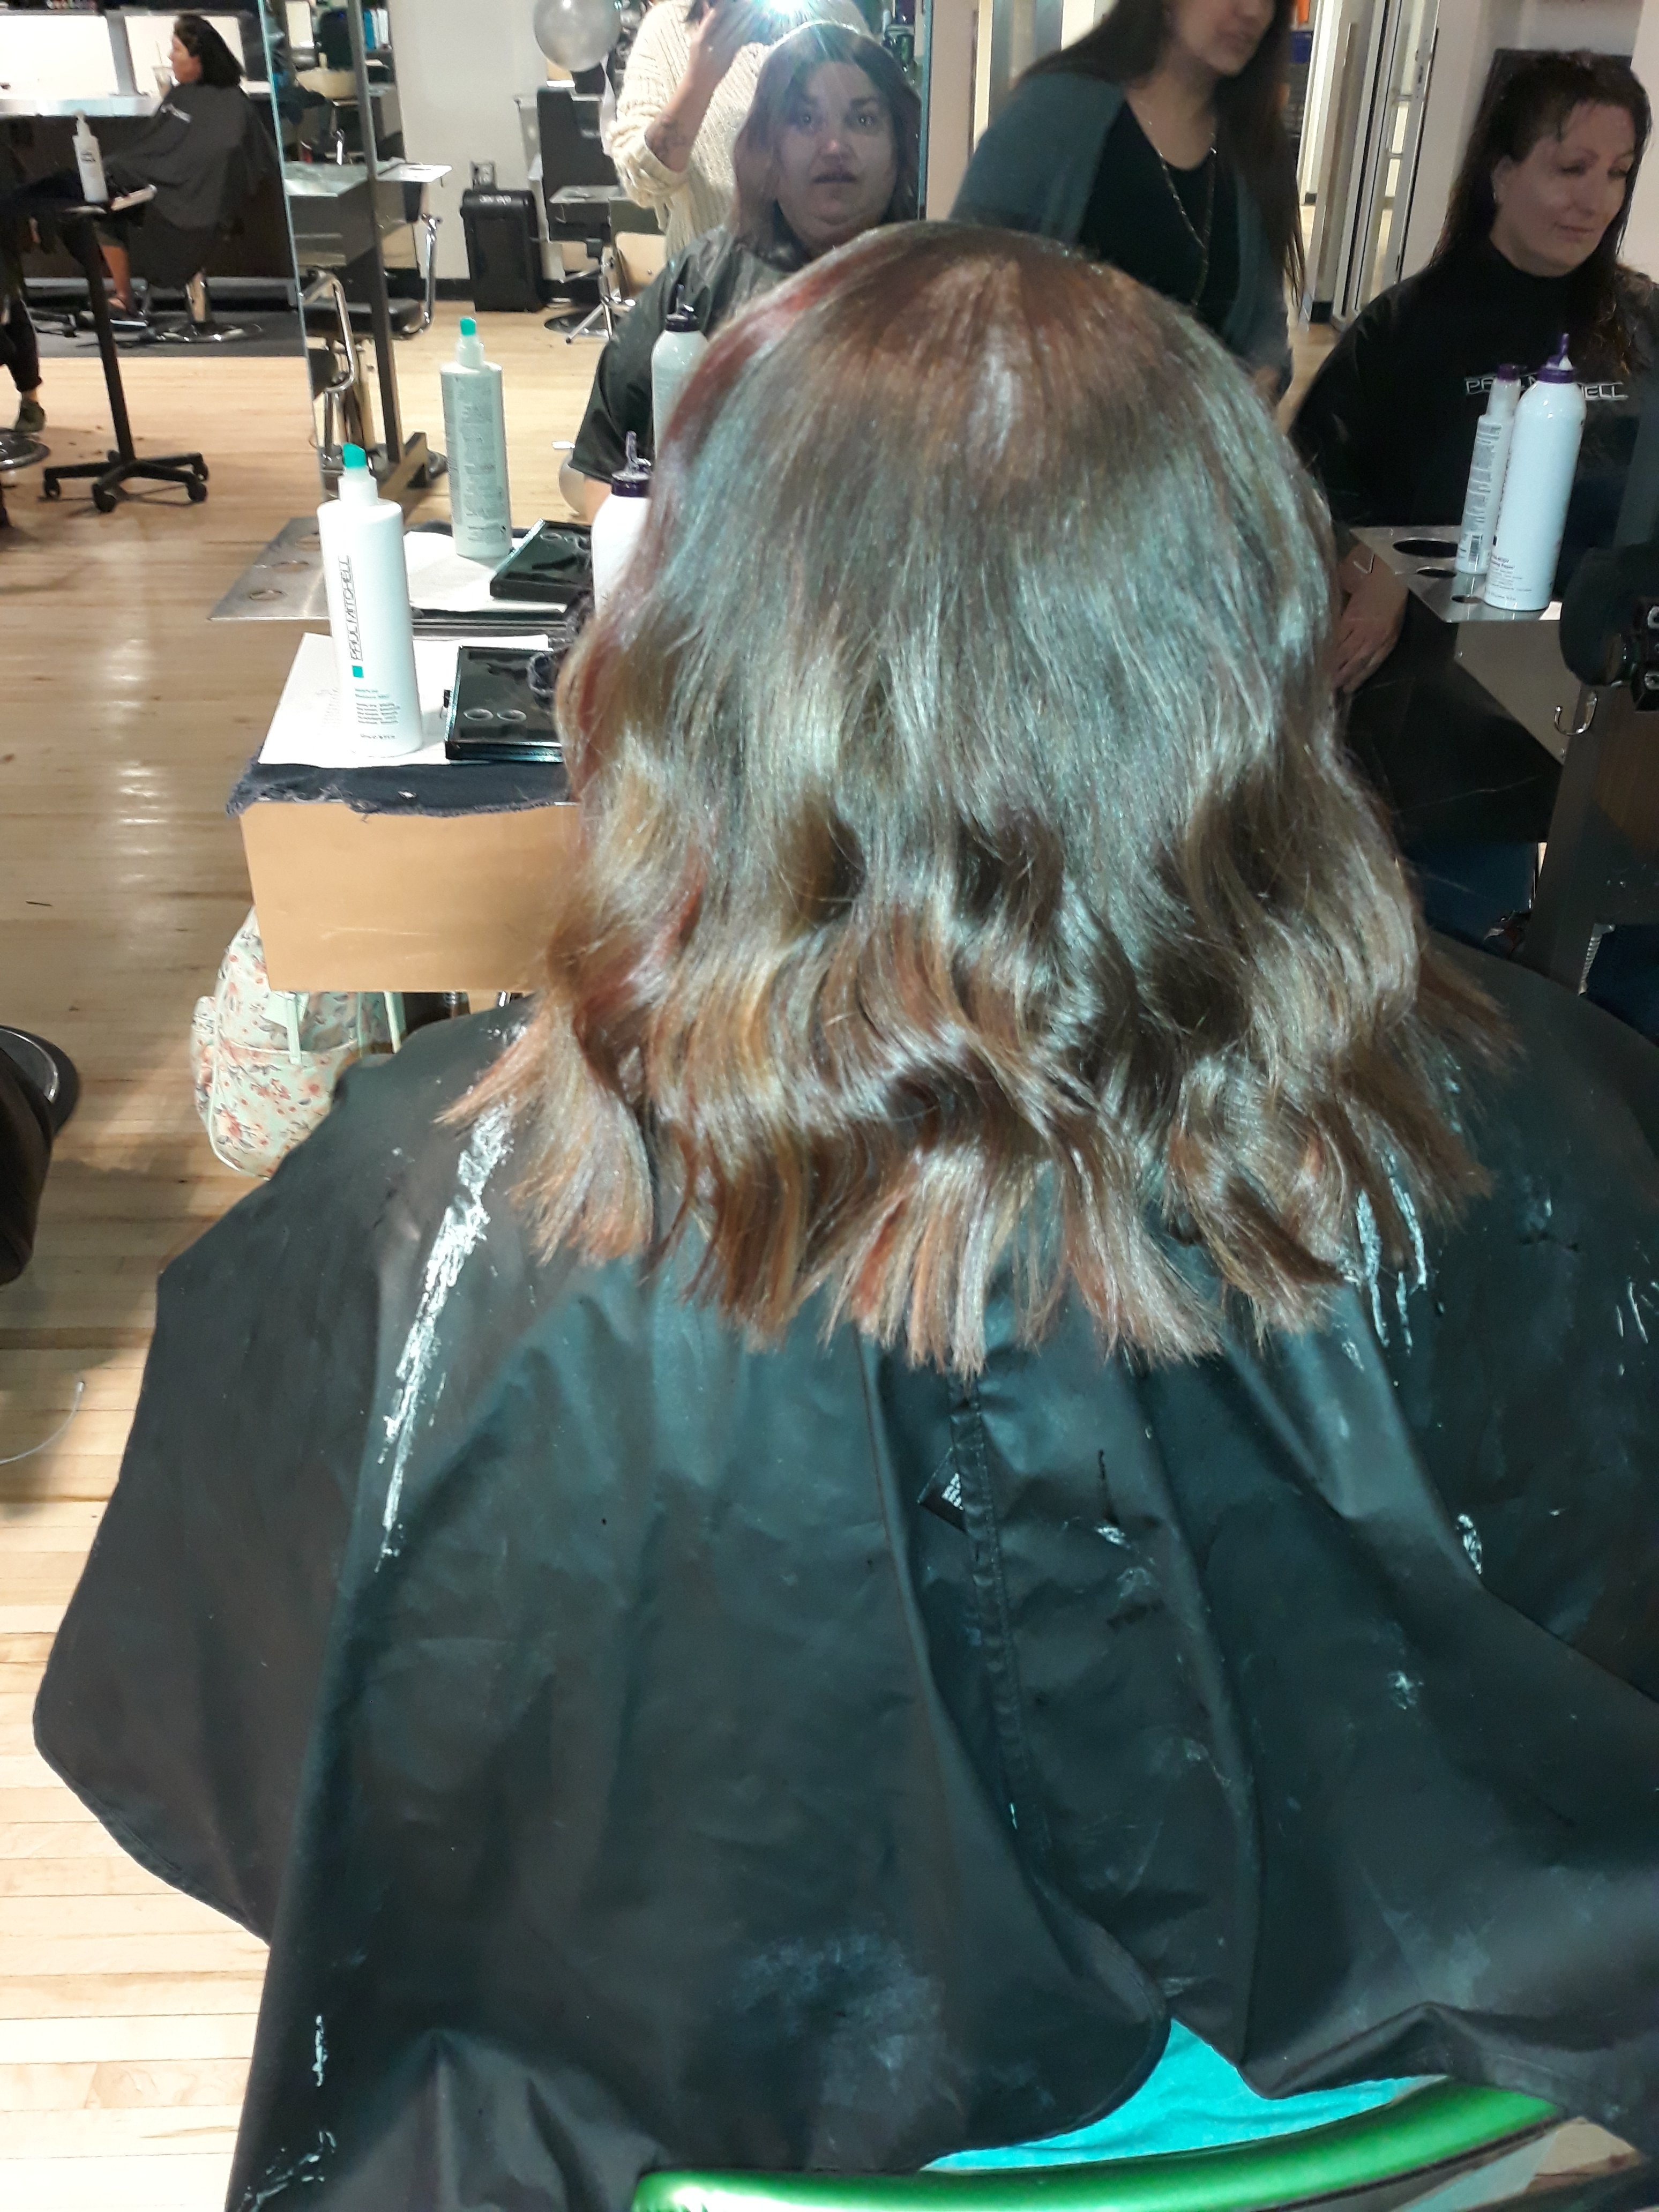 Kimberlee Plezia after her hair cut at Paul Mitchell Studios in Colorado Springs, CO